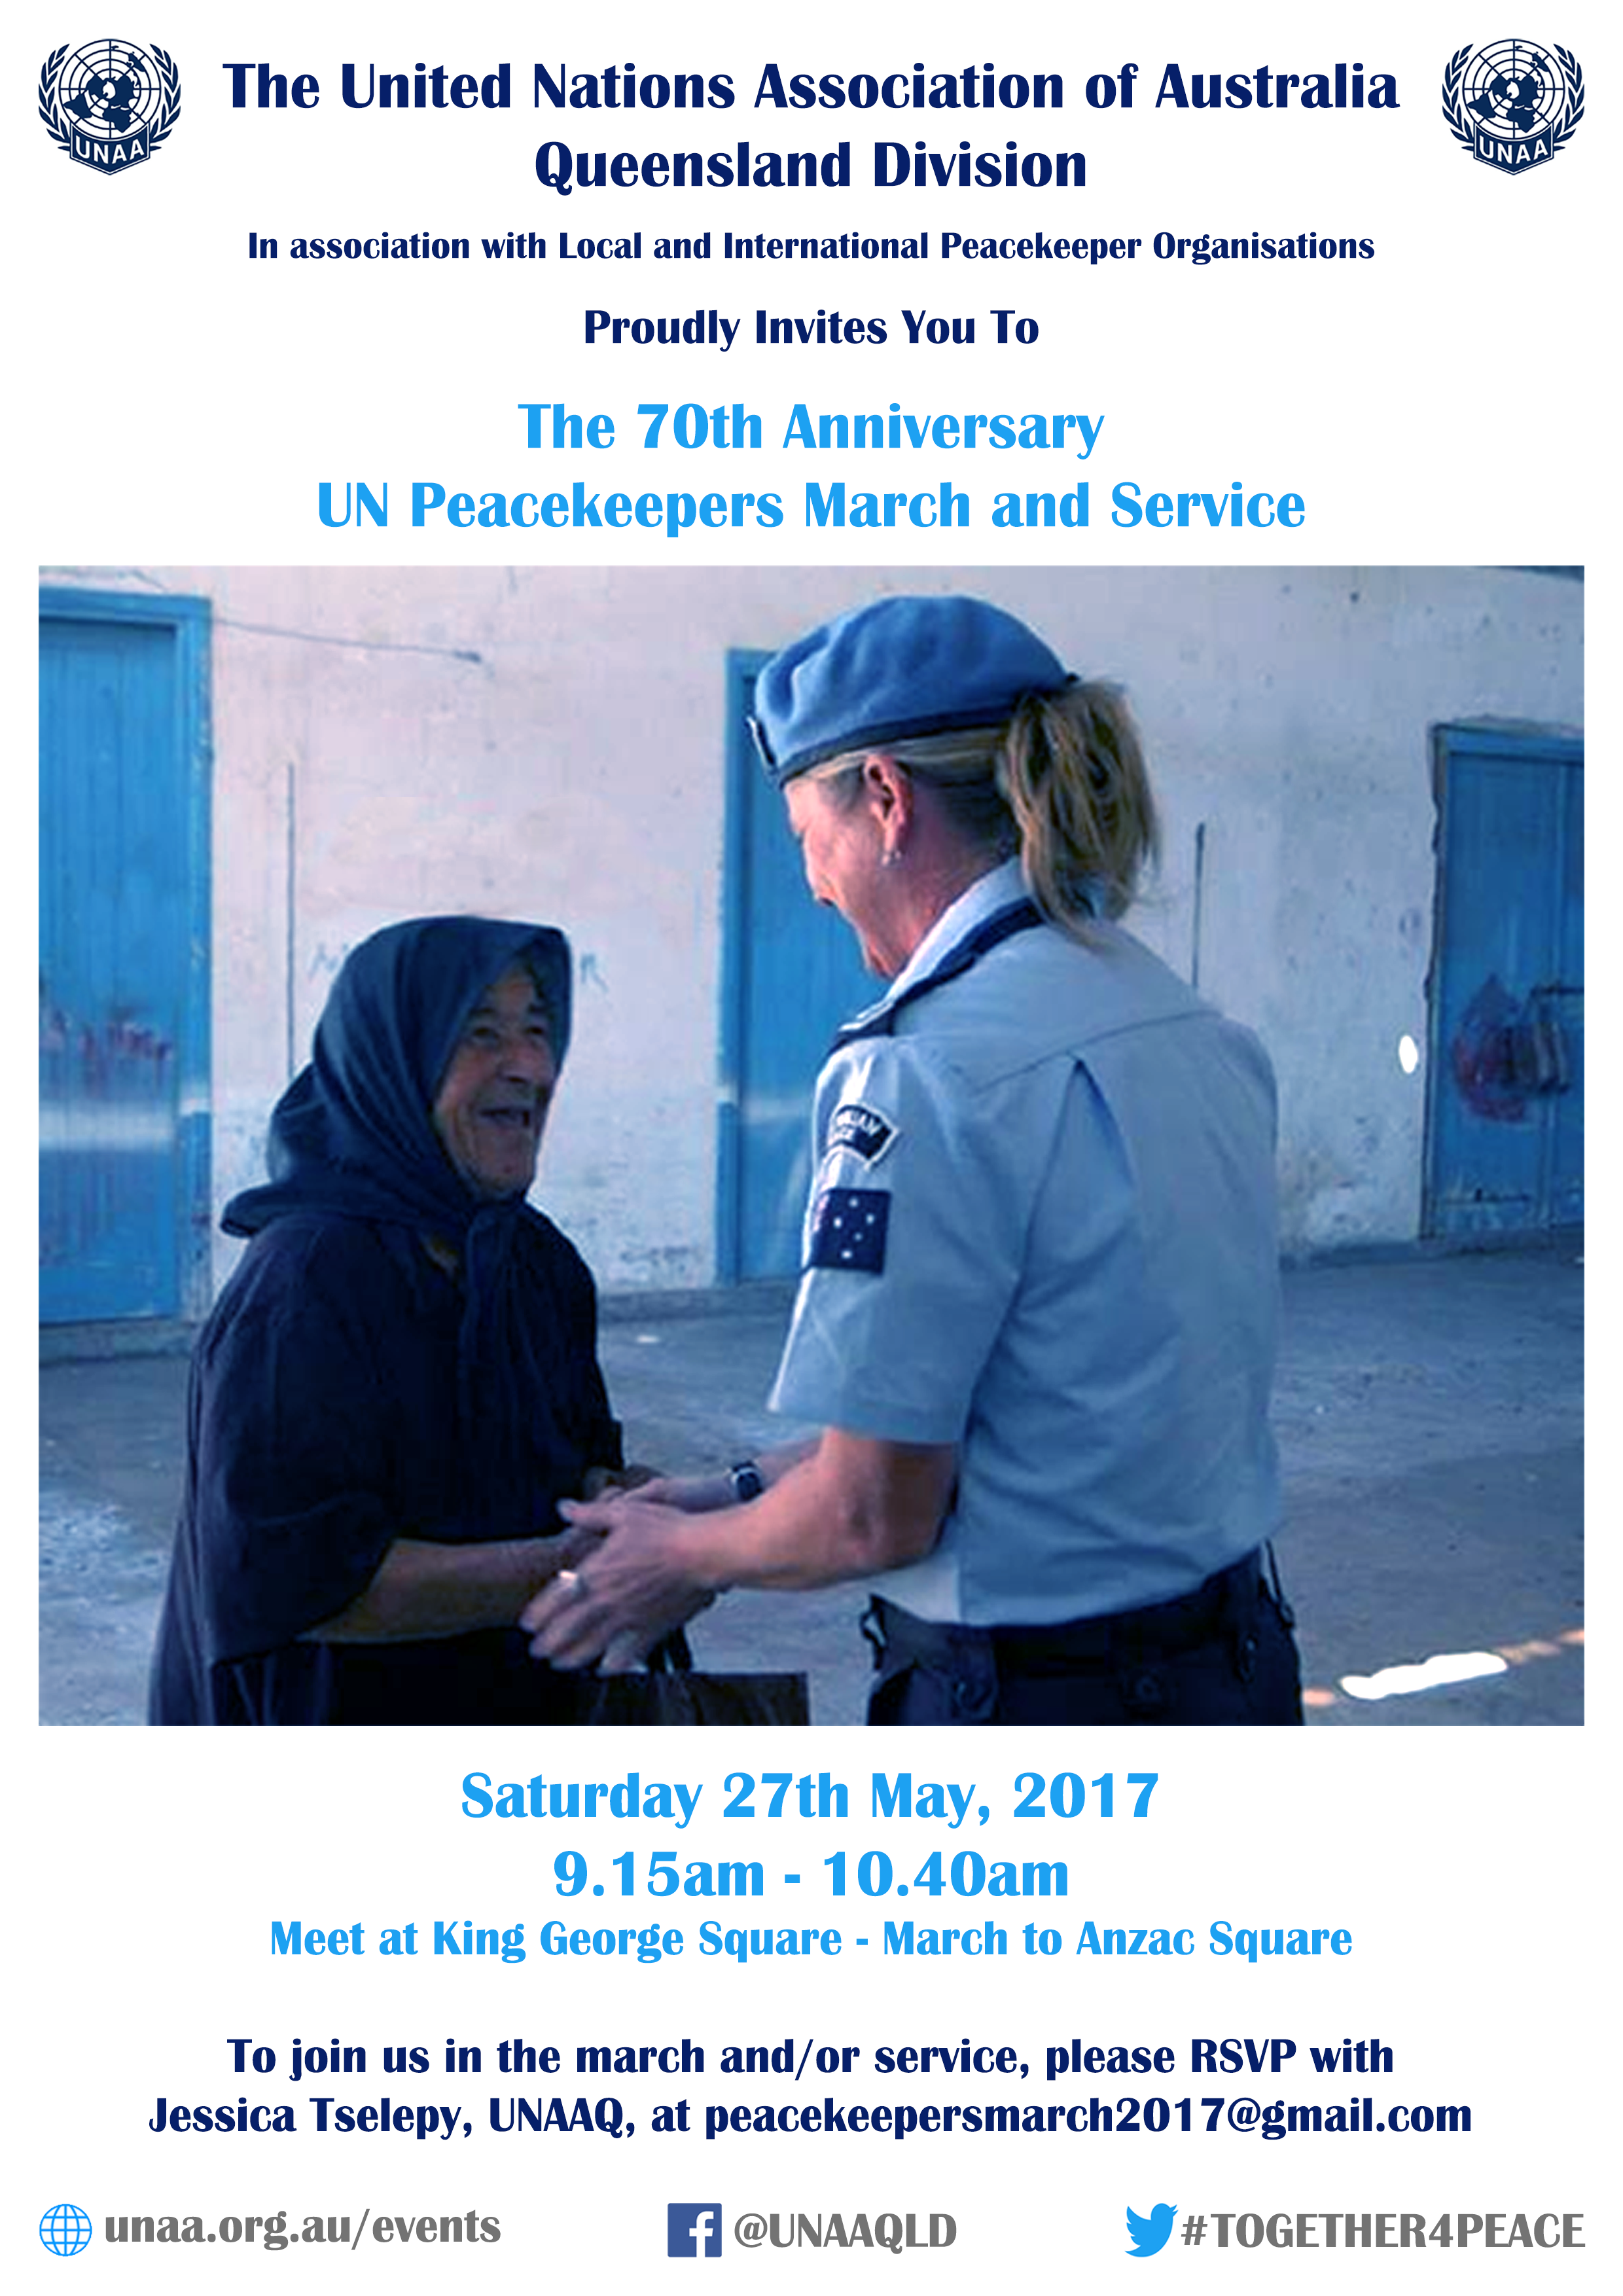 UNAAQ_Peacekeepers_March_and_Service_Poster_2017_(2).fw.png